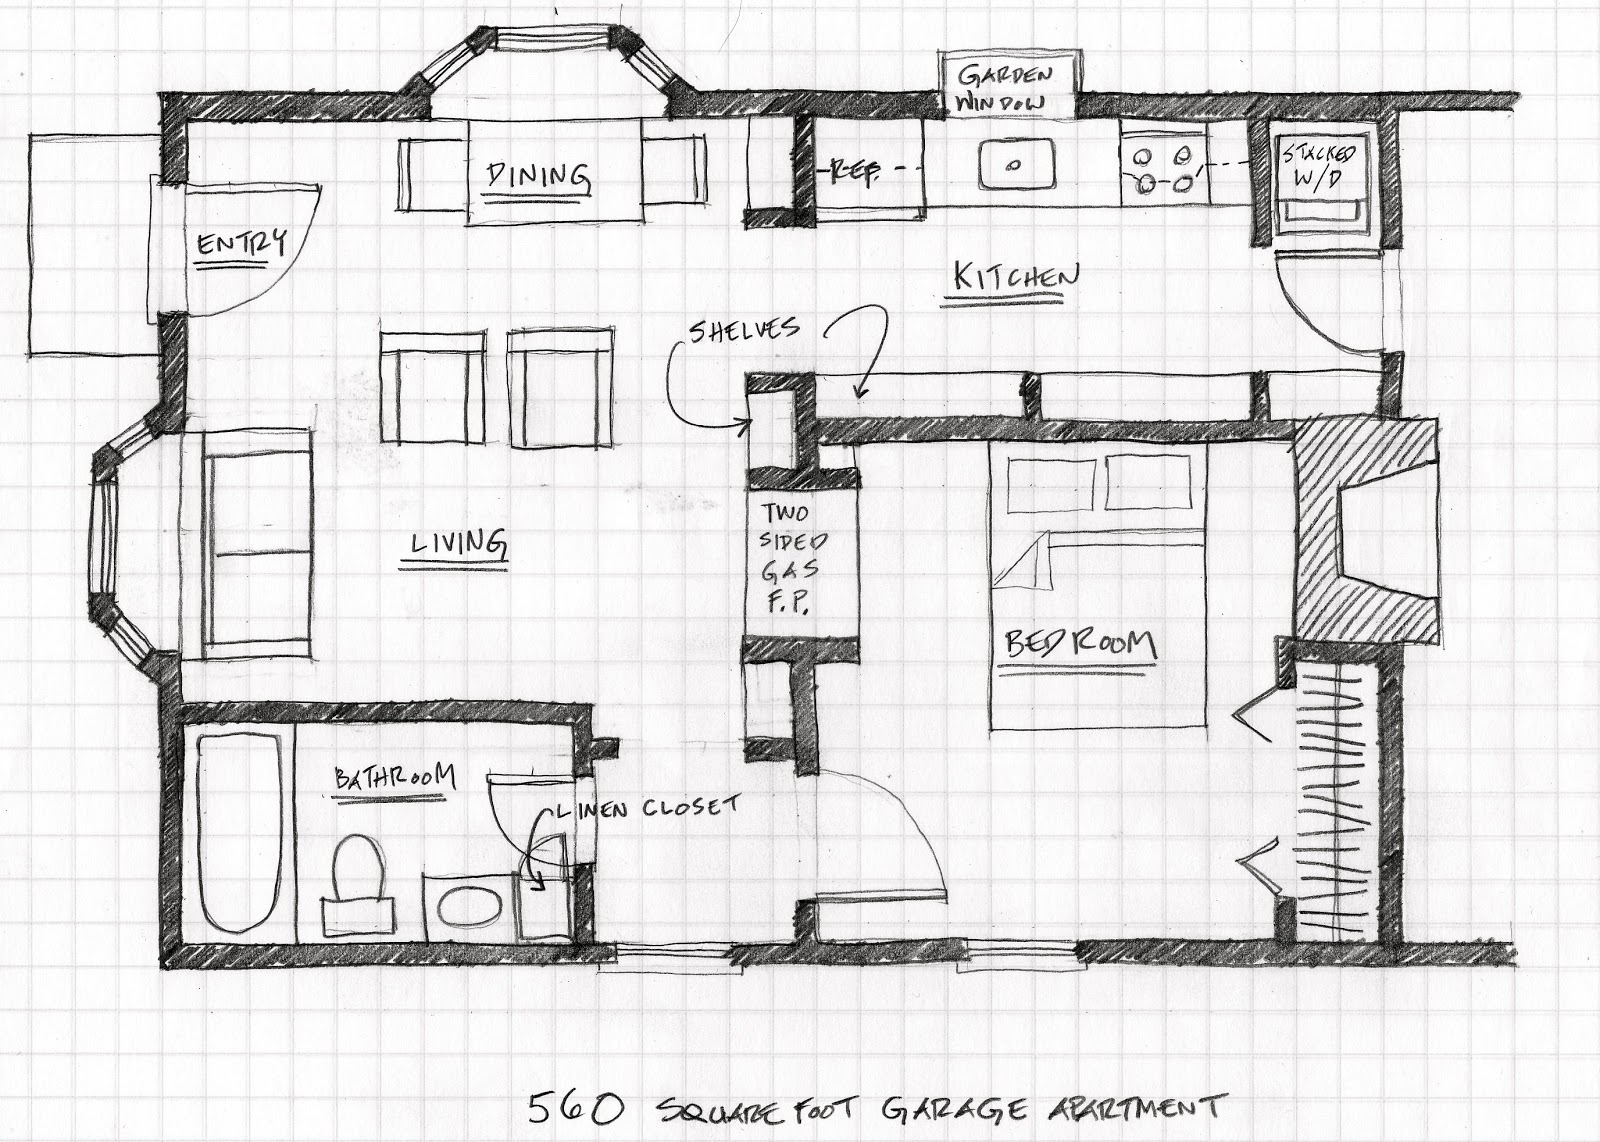 Cool Floor plan for square foot garage apartment